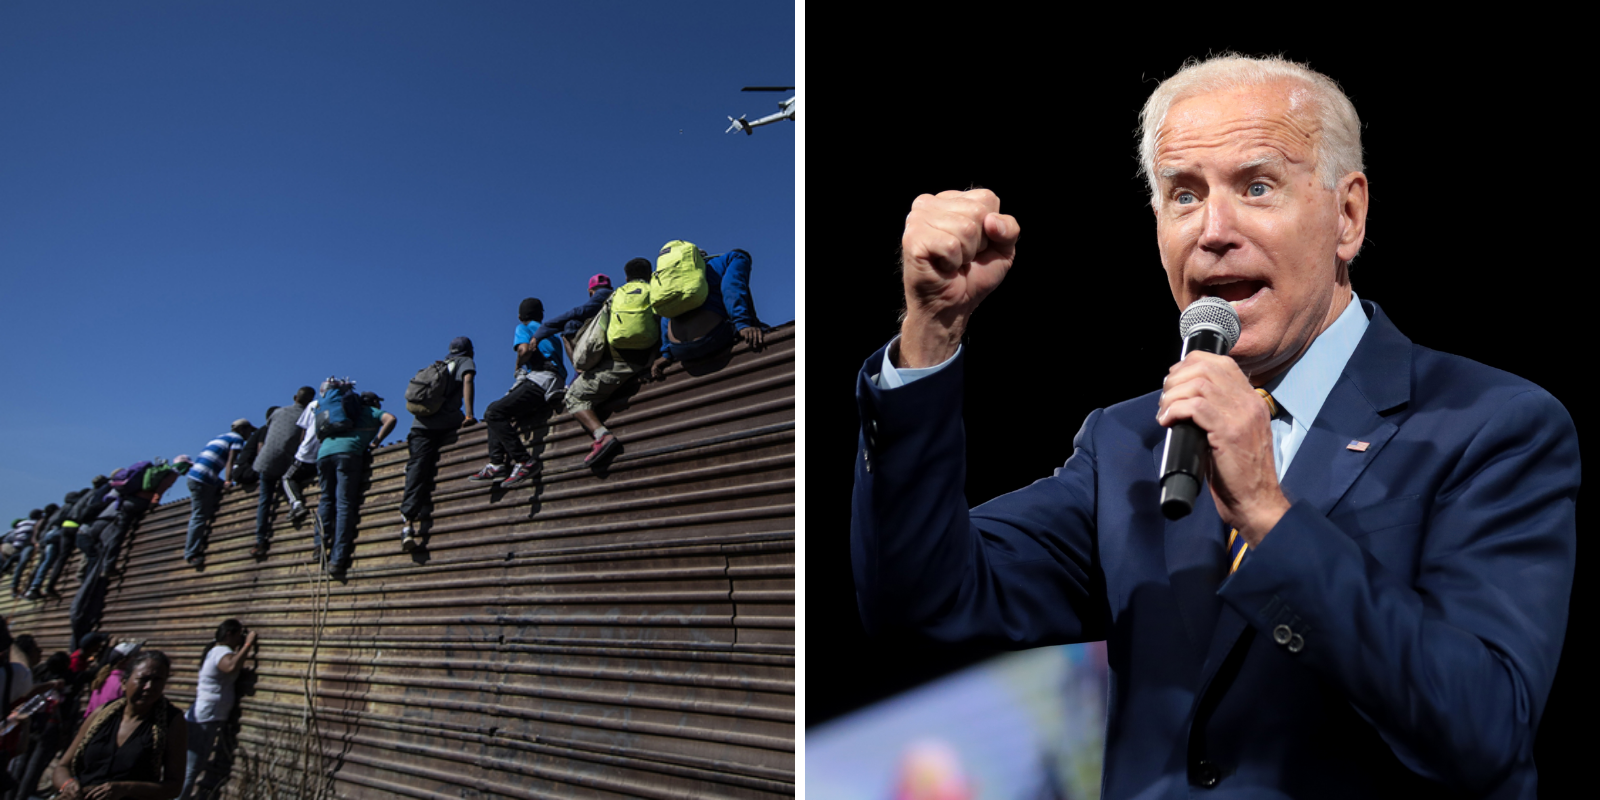 REVEALED: Leaked documents show child migrant crisis at US-Mexico border